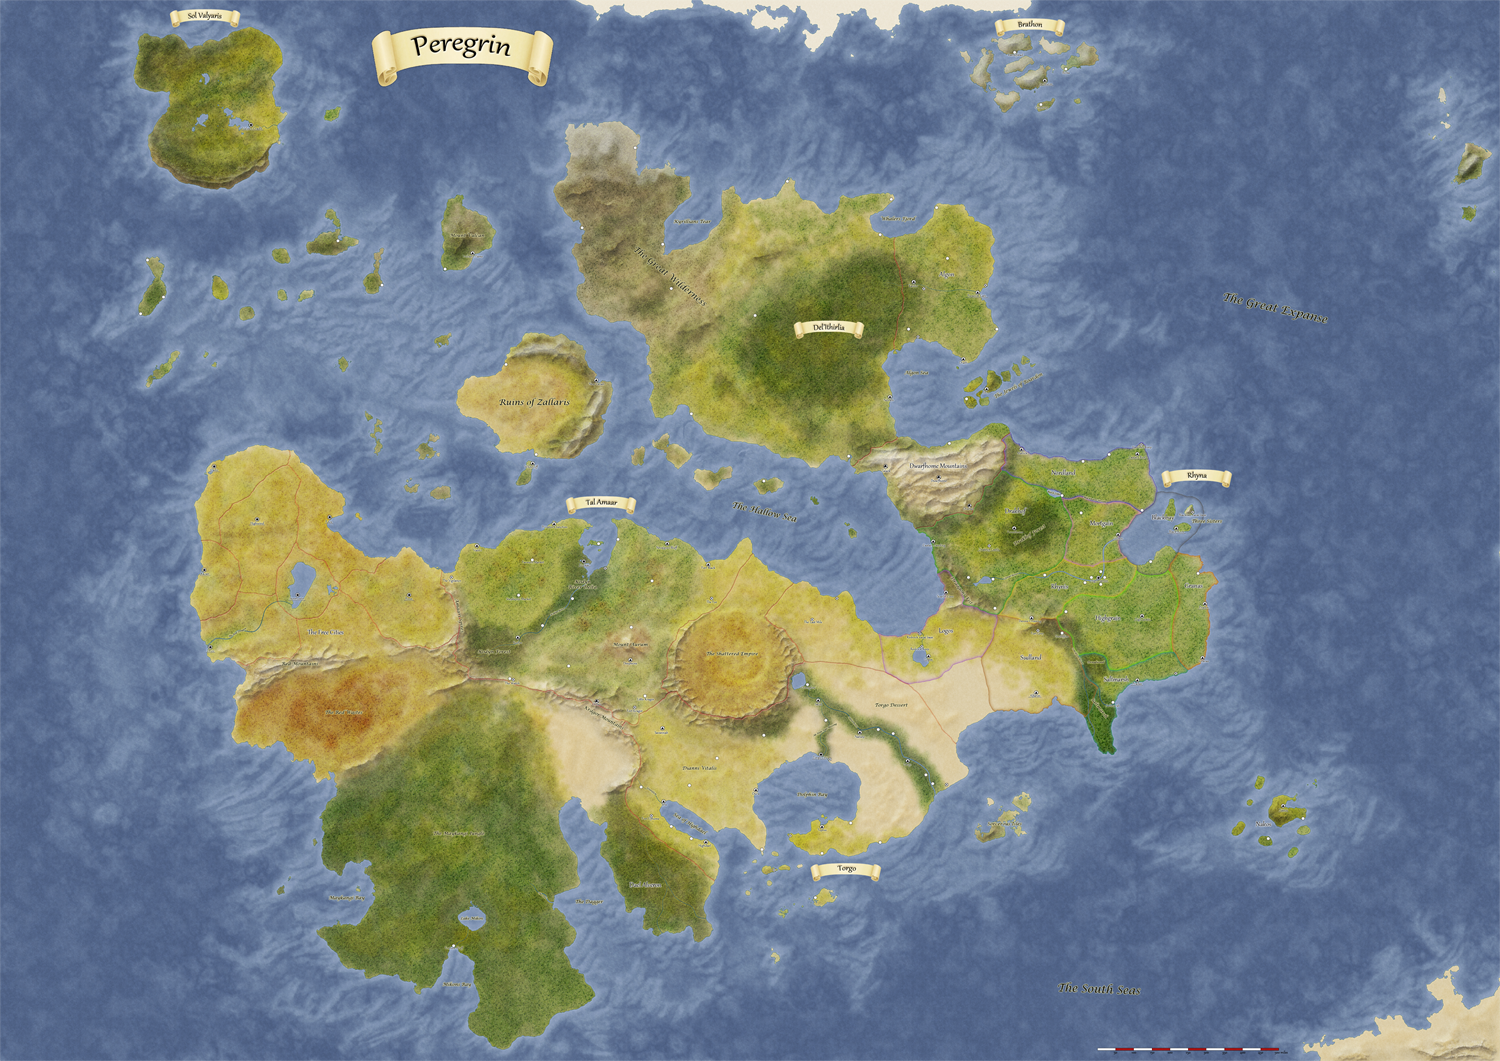 Peregrin World Map. I used the same techniques I learned when making the Ragnar map. I had to downsize quite a bit to upload here - on the original you can read all the name-tags